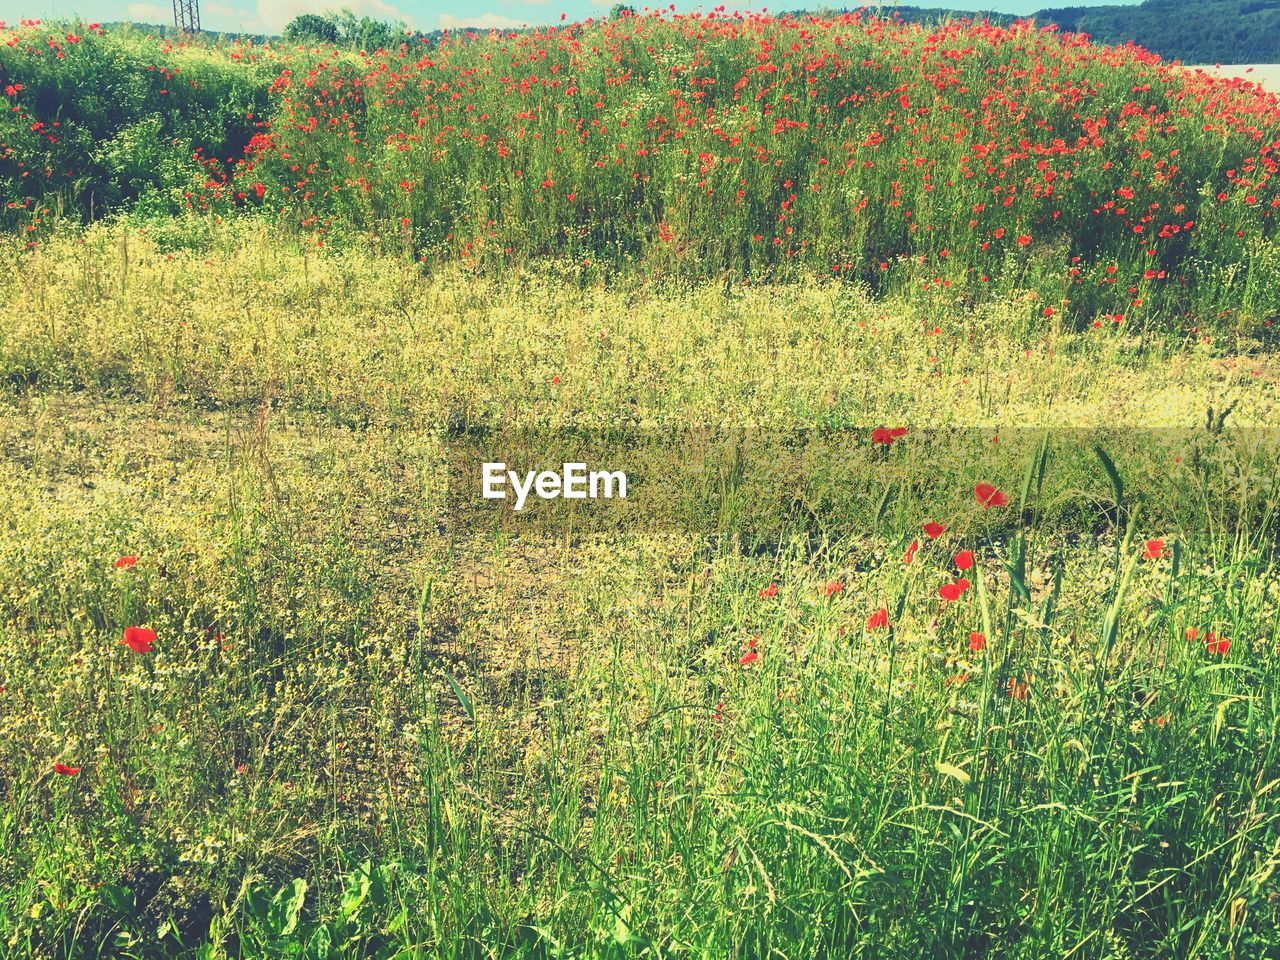 growth, grass, nature, field, flower, tranquility, poppy, plant, outdoors, no people, day, beauty in nature, red, scenics, landscape, tree